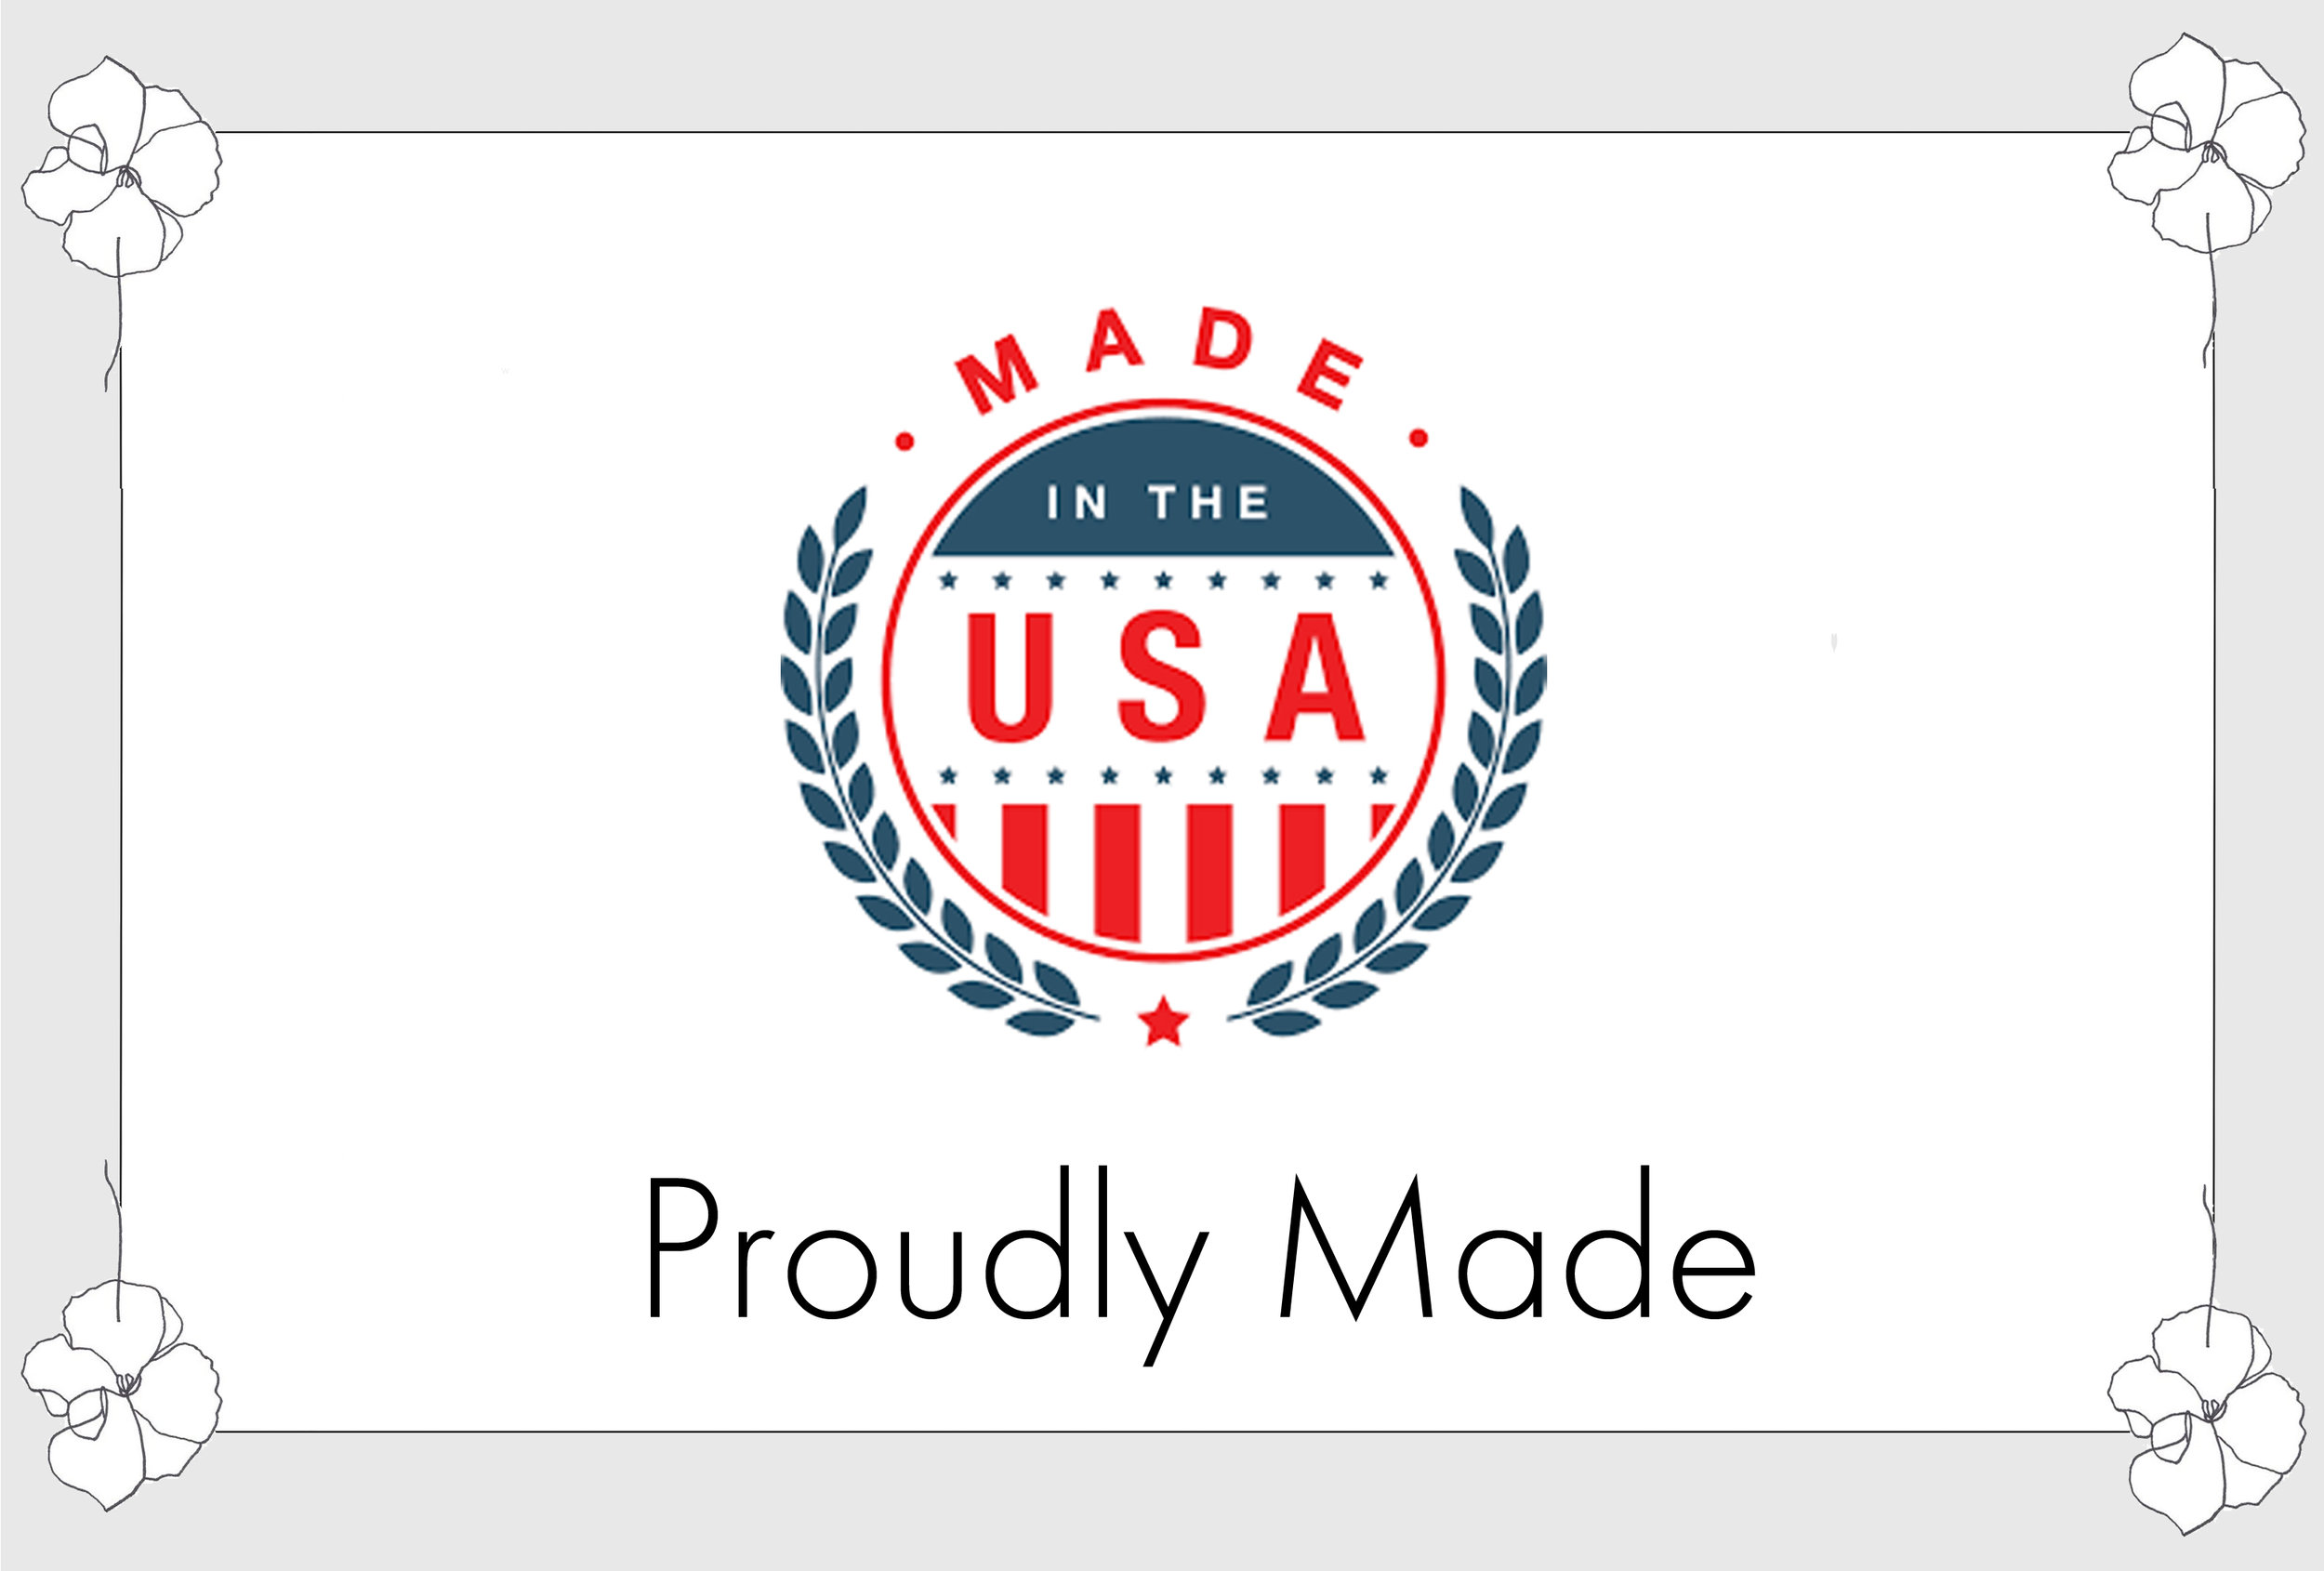 1 MADE IN THE USA.jpg